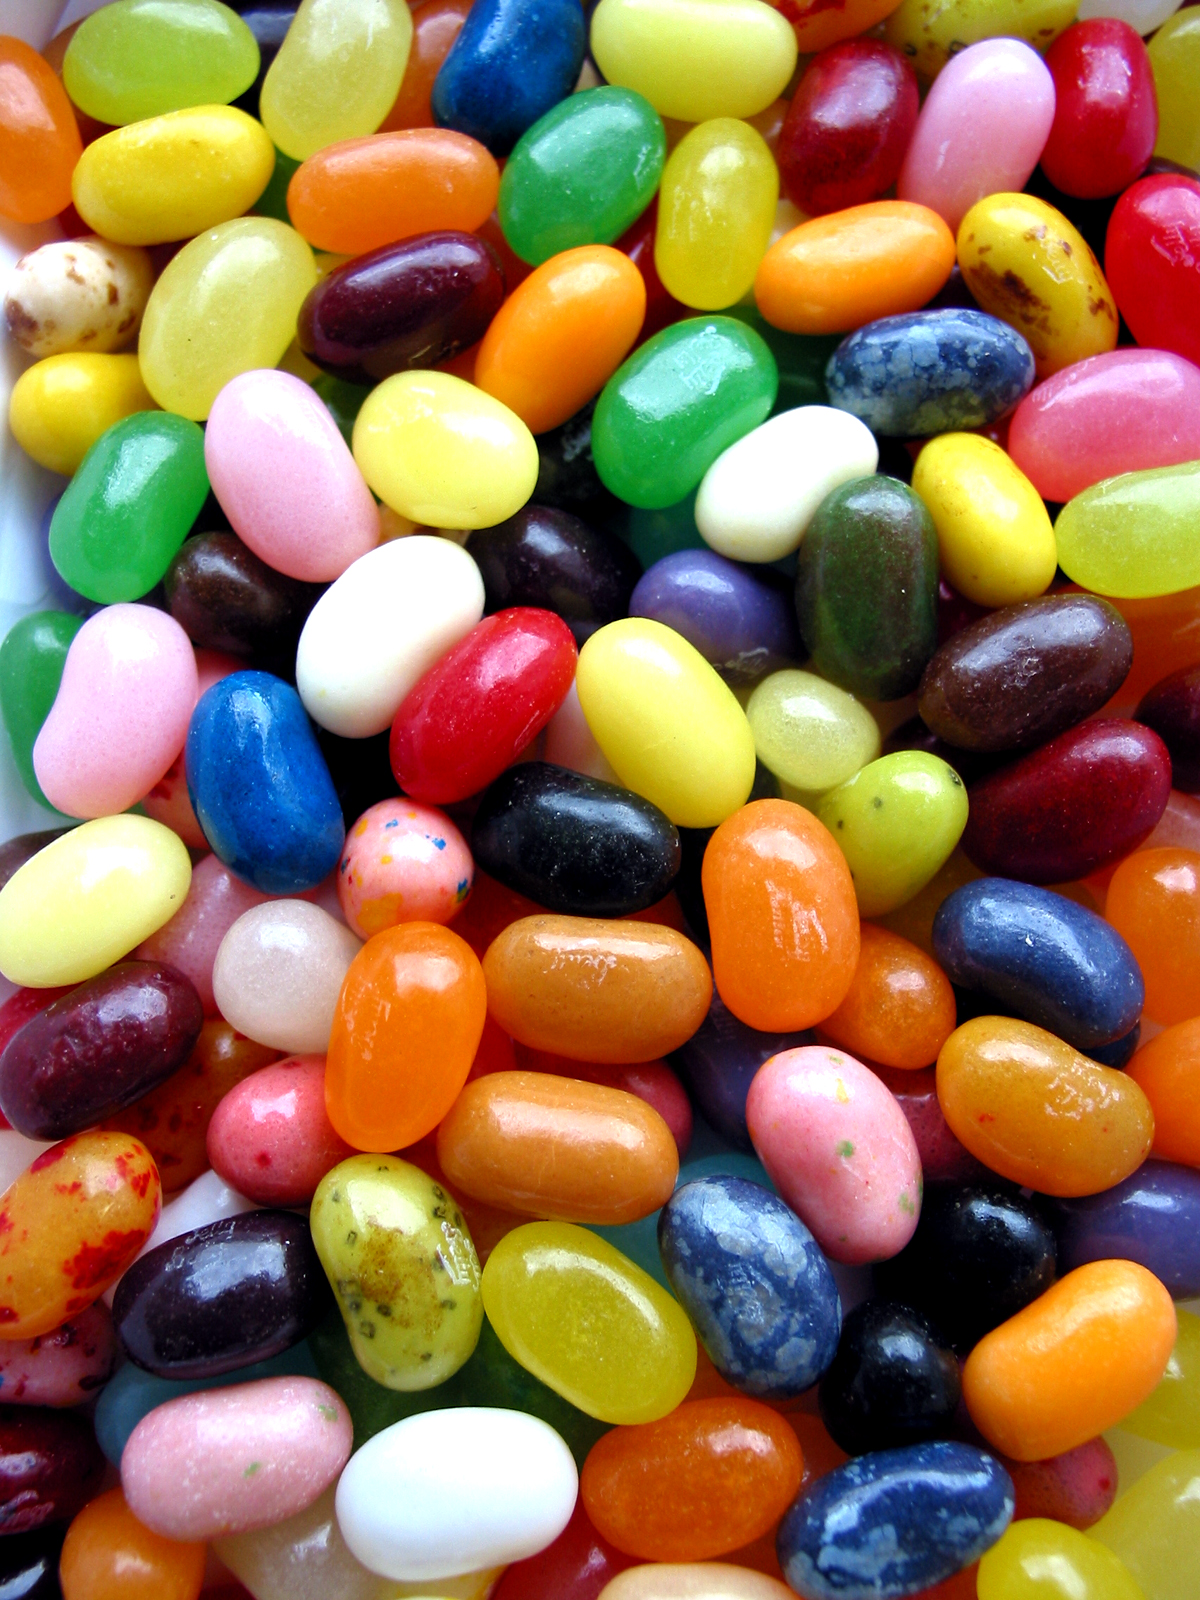 Android Jelly Bean Passes 50% Adoption, ICS Falls Below 20%